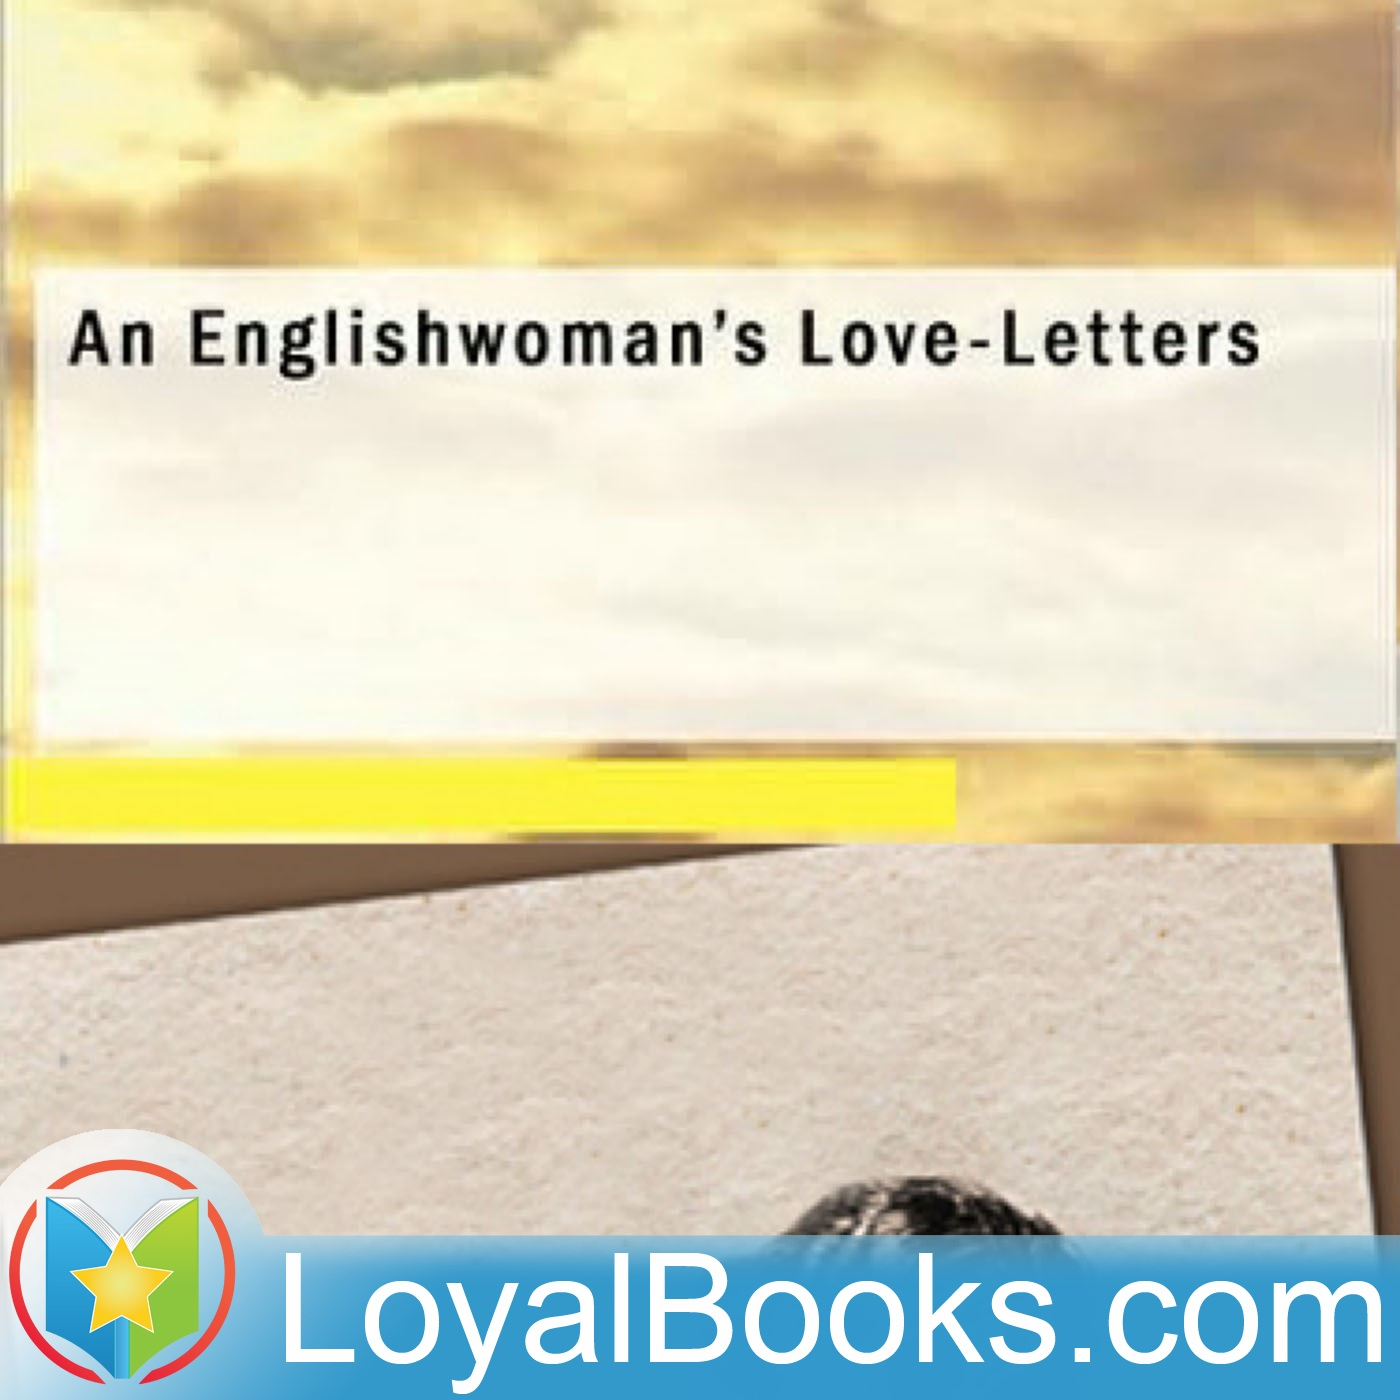 <![CDATA[An Englishwoman's Love-Letters by Anonymous]]>